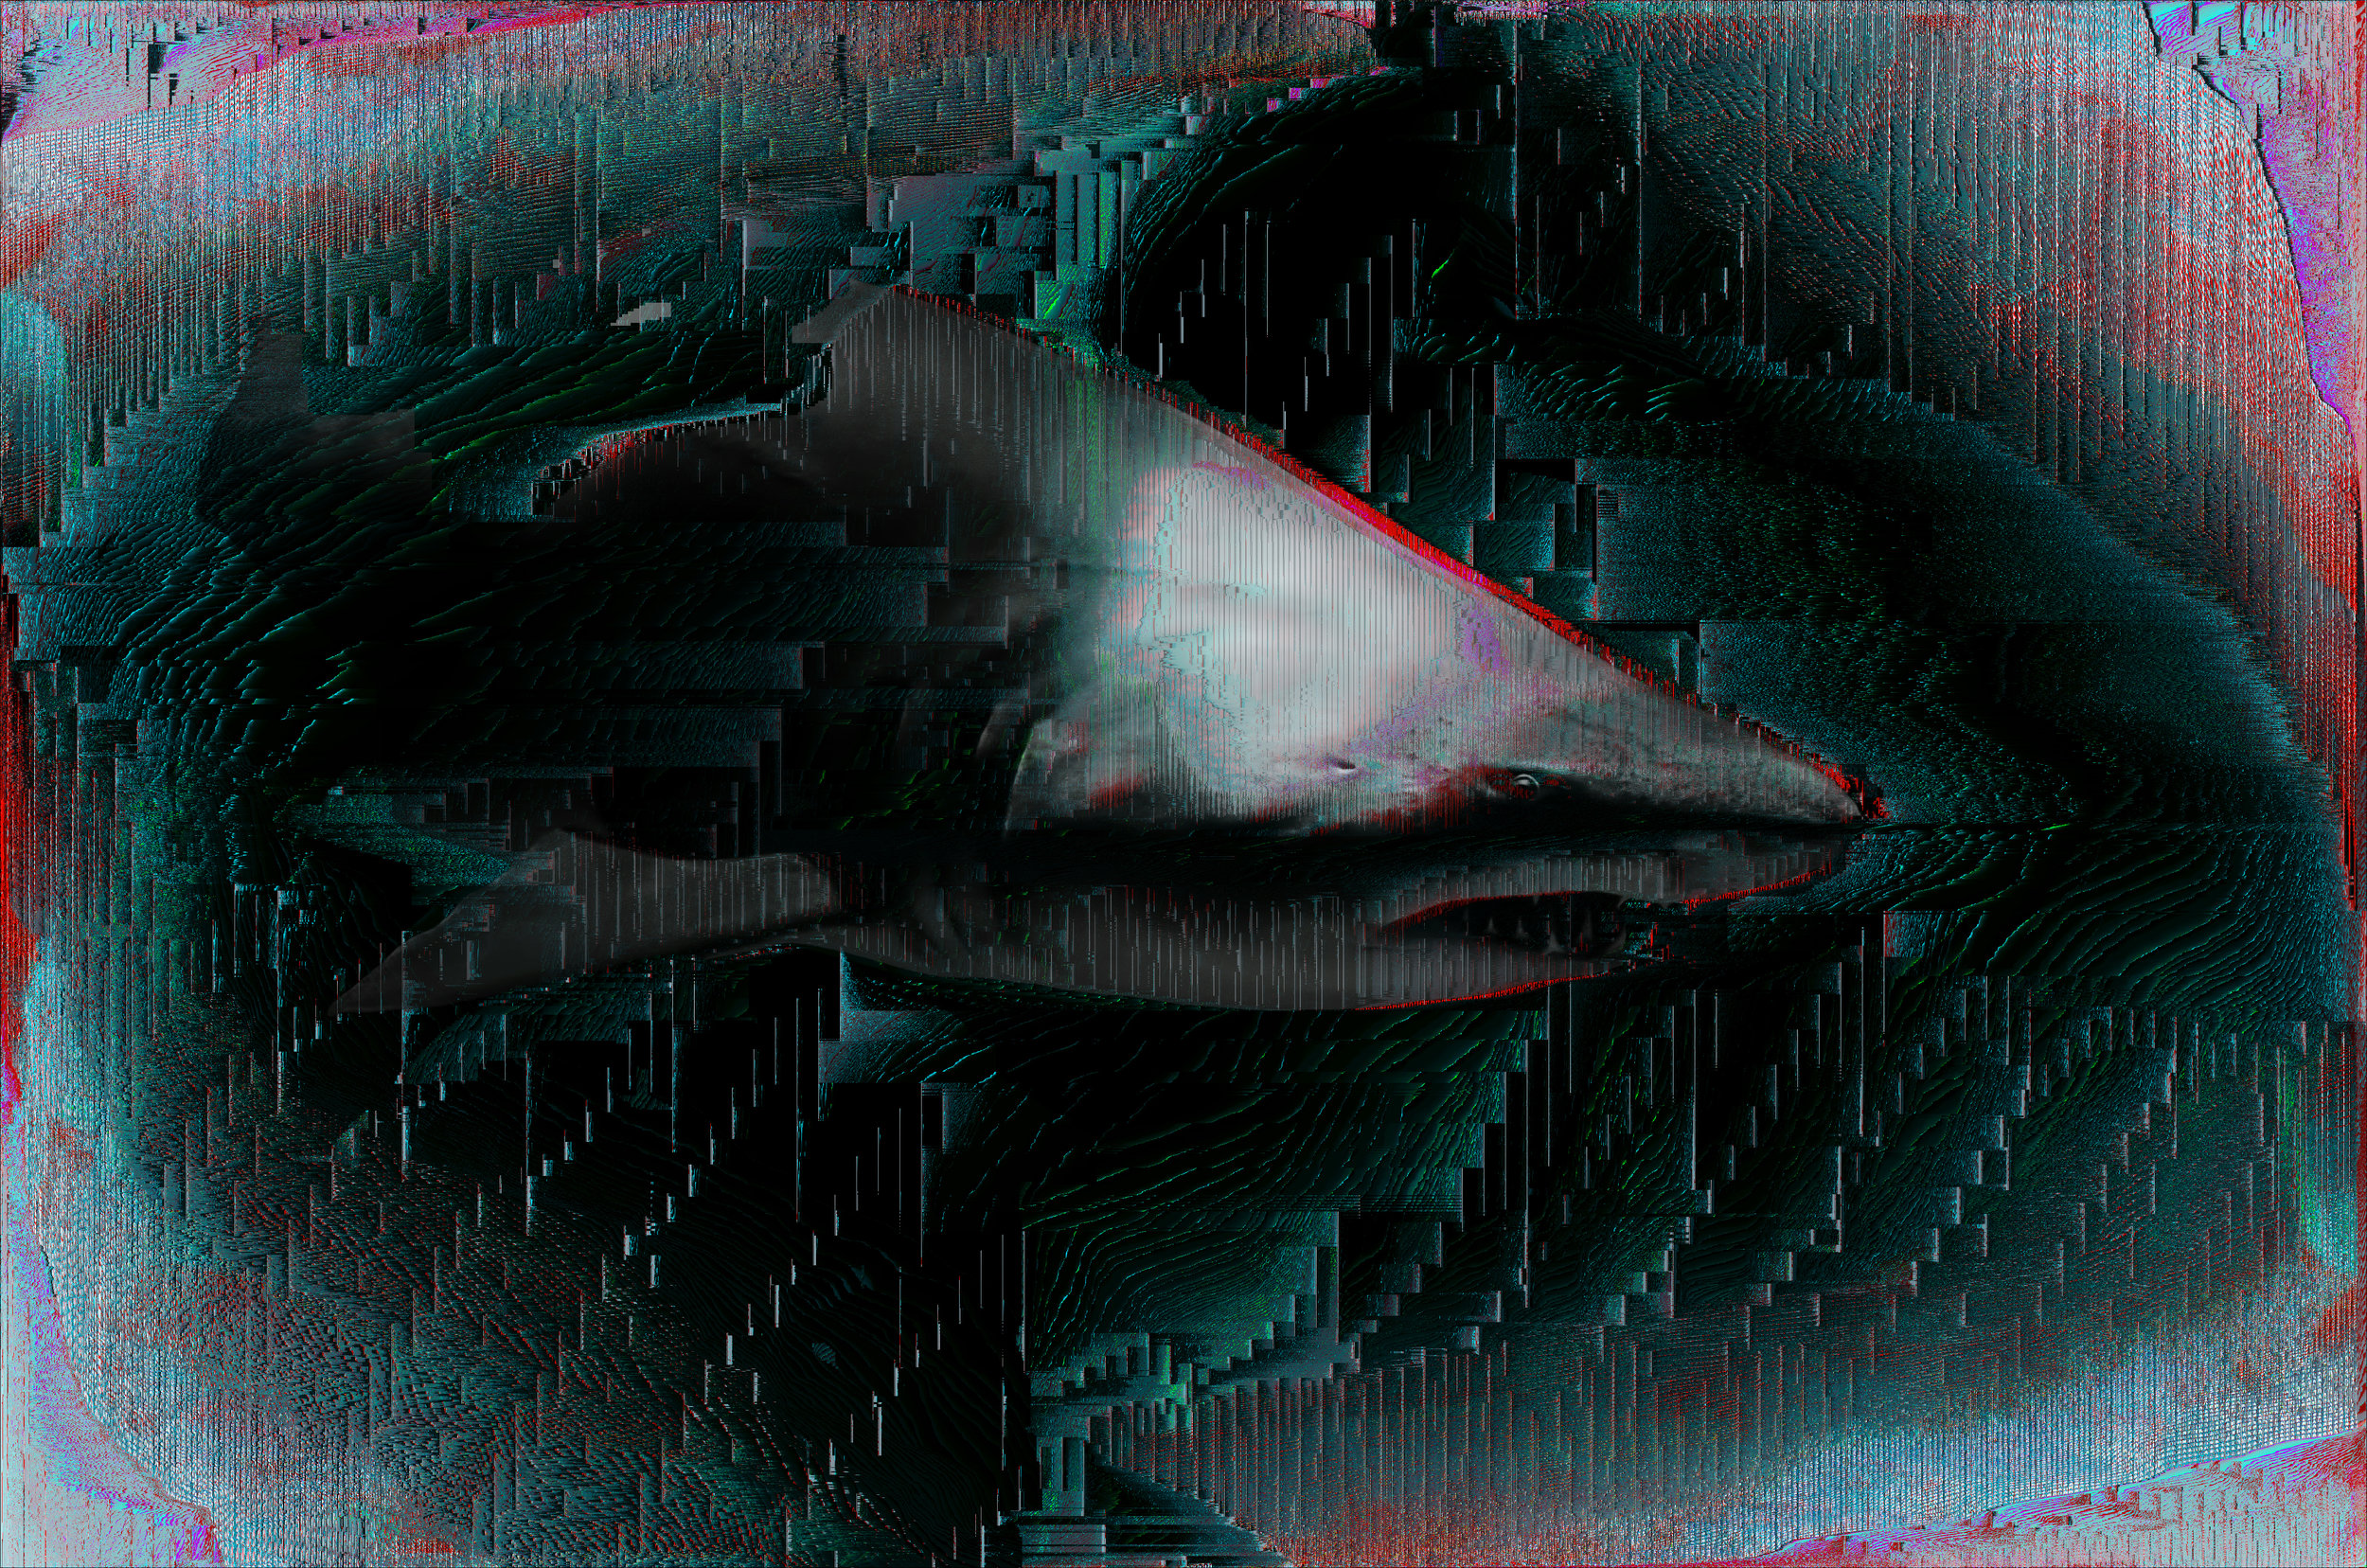 anaglych_11